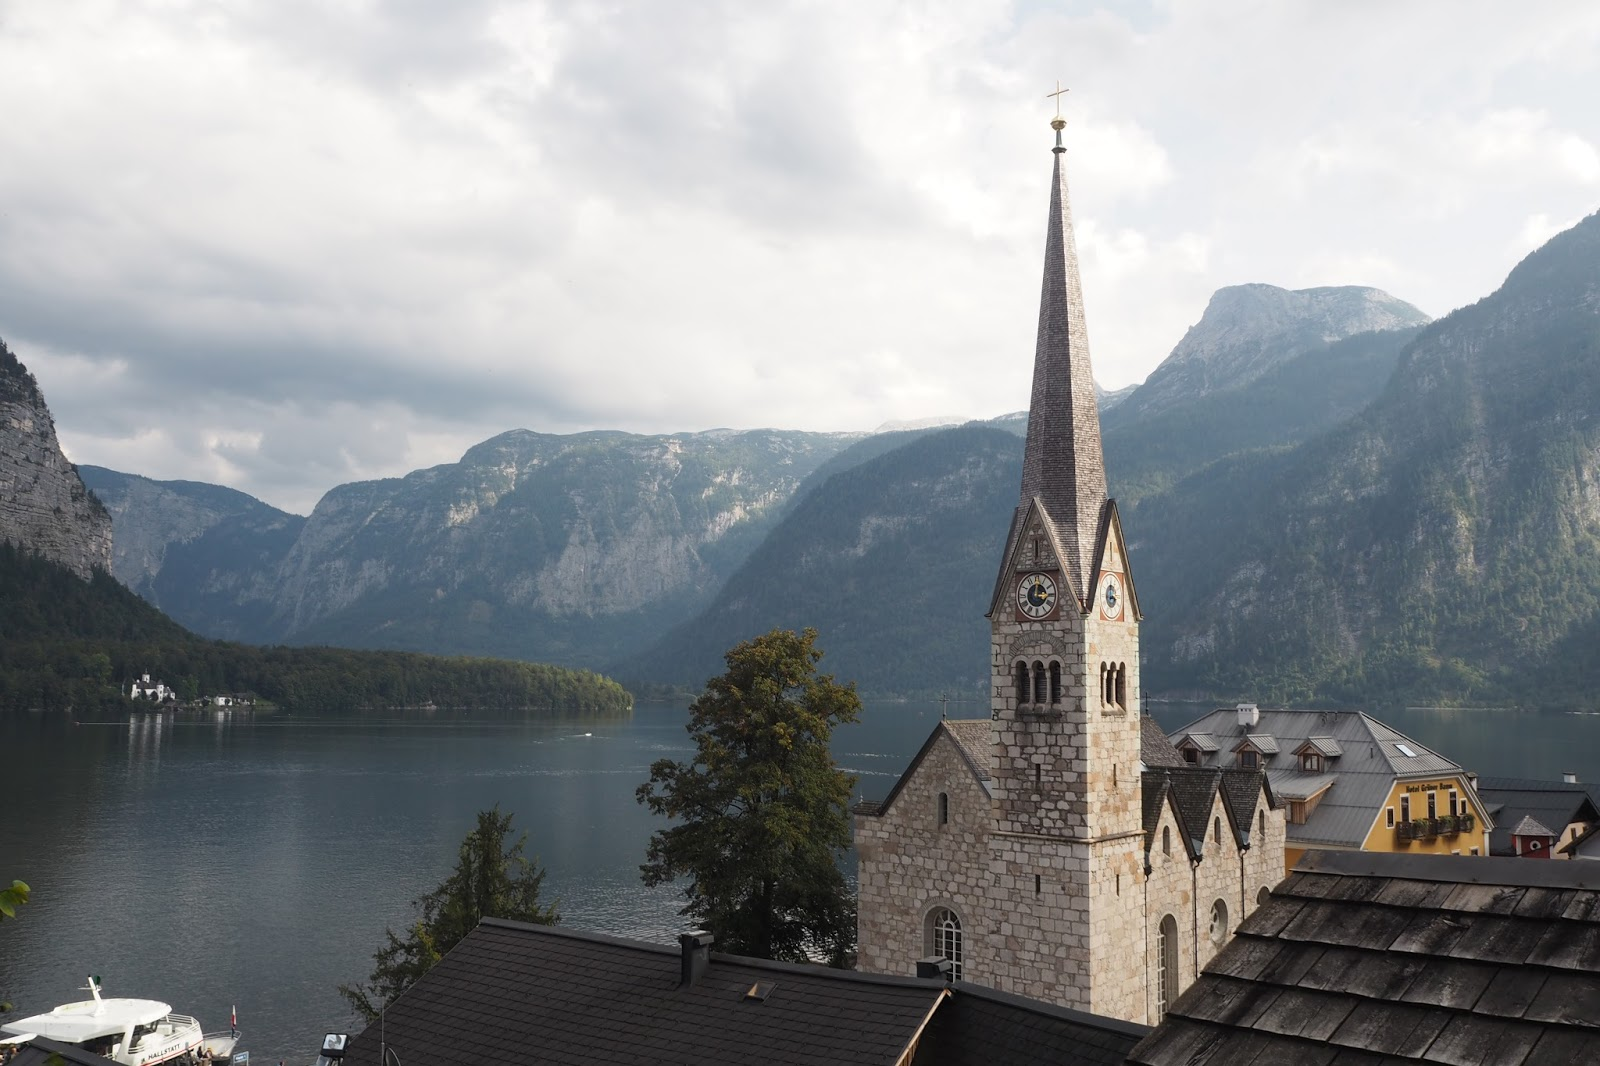 Views of Hallstatt